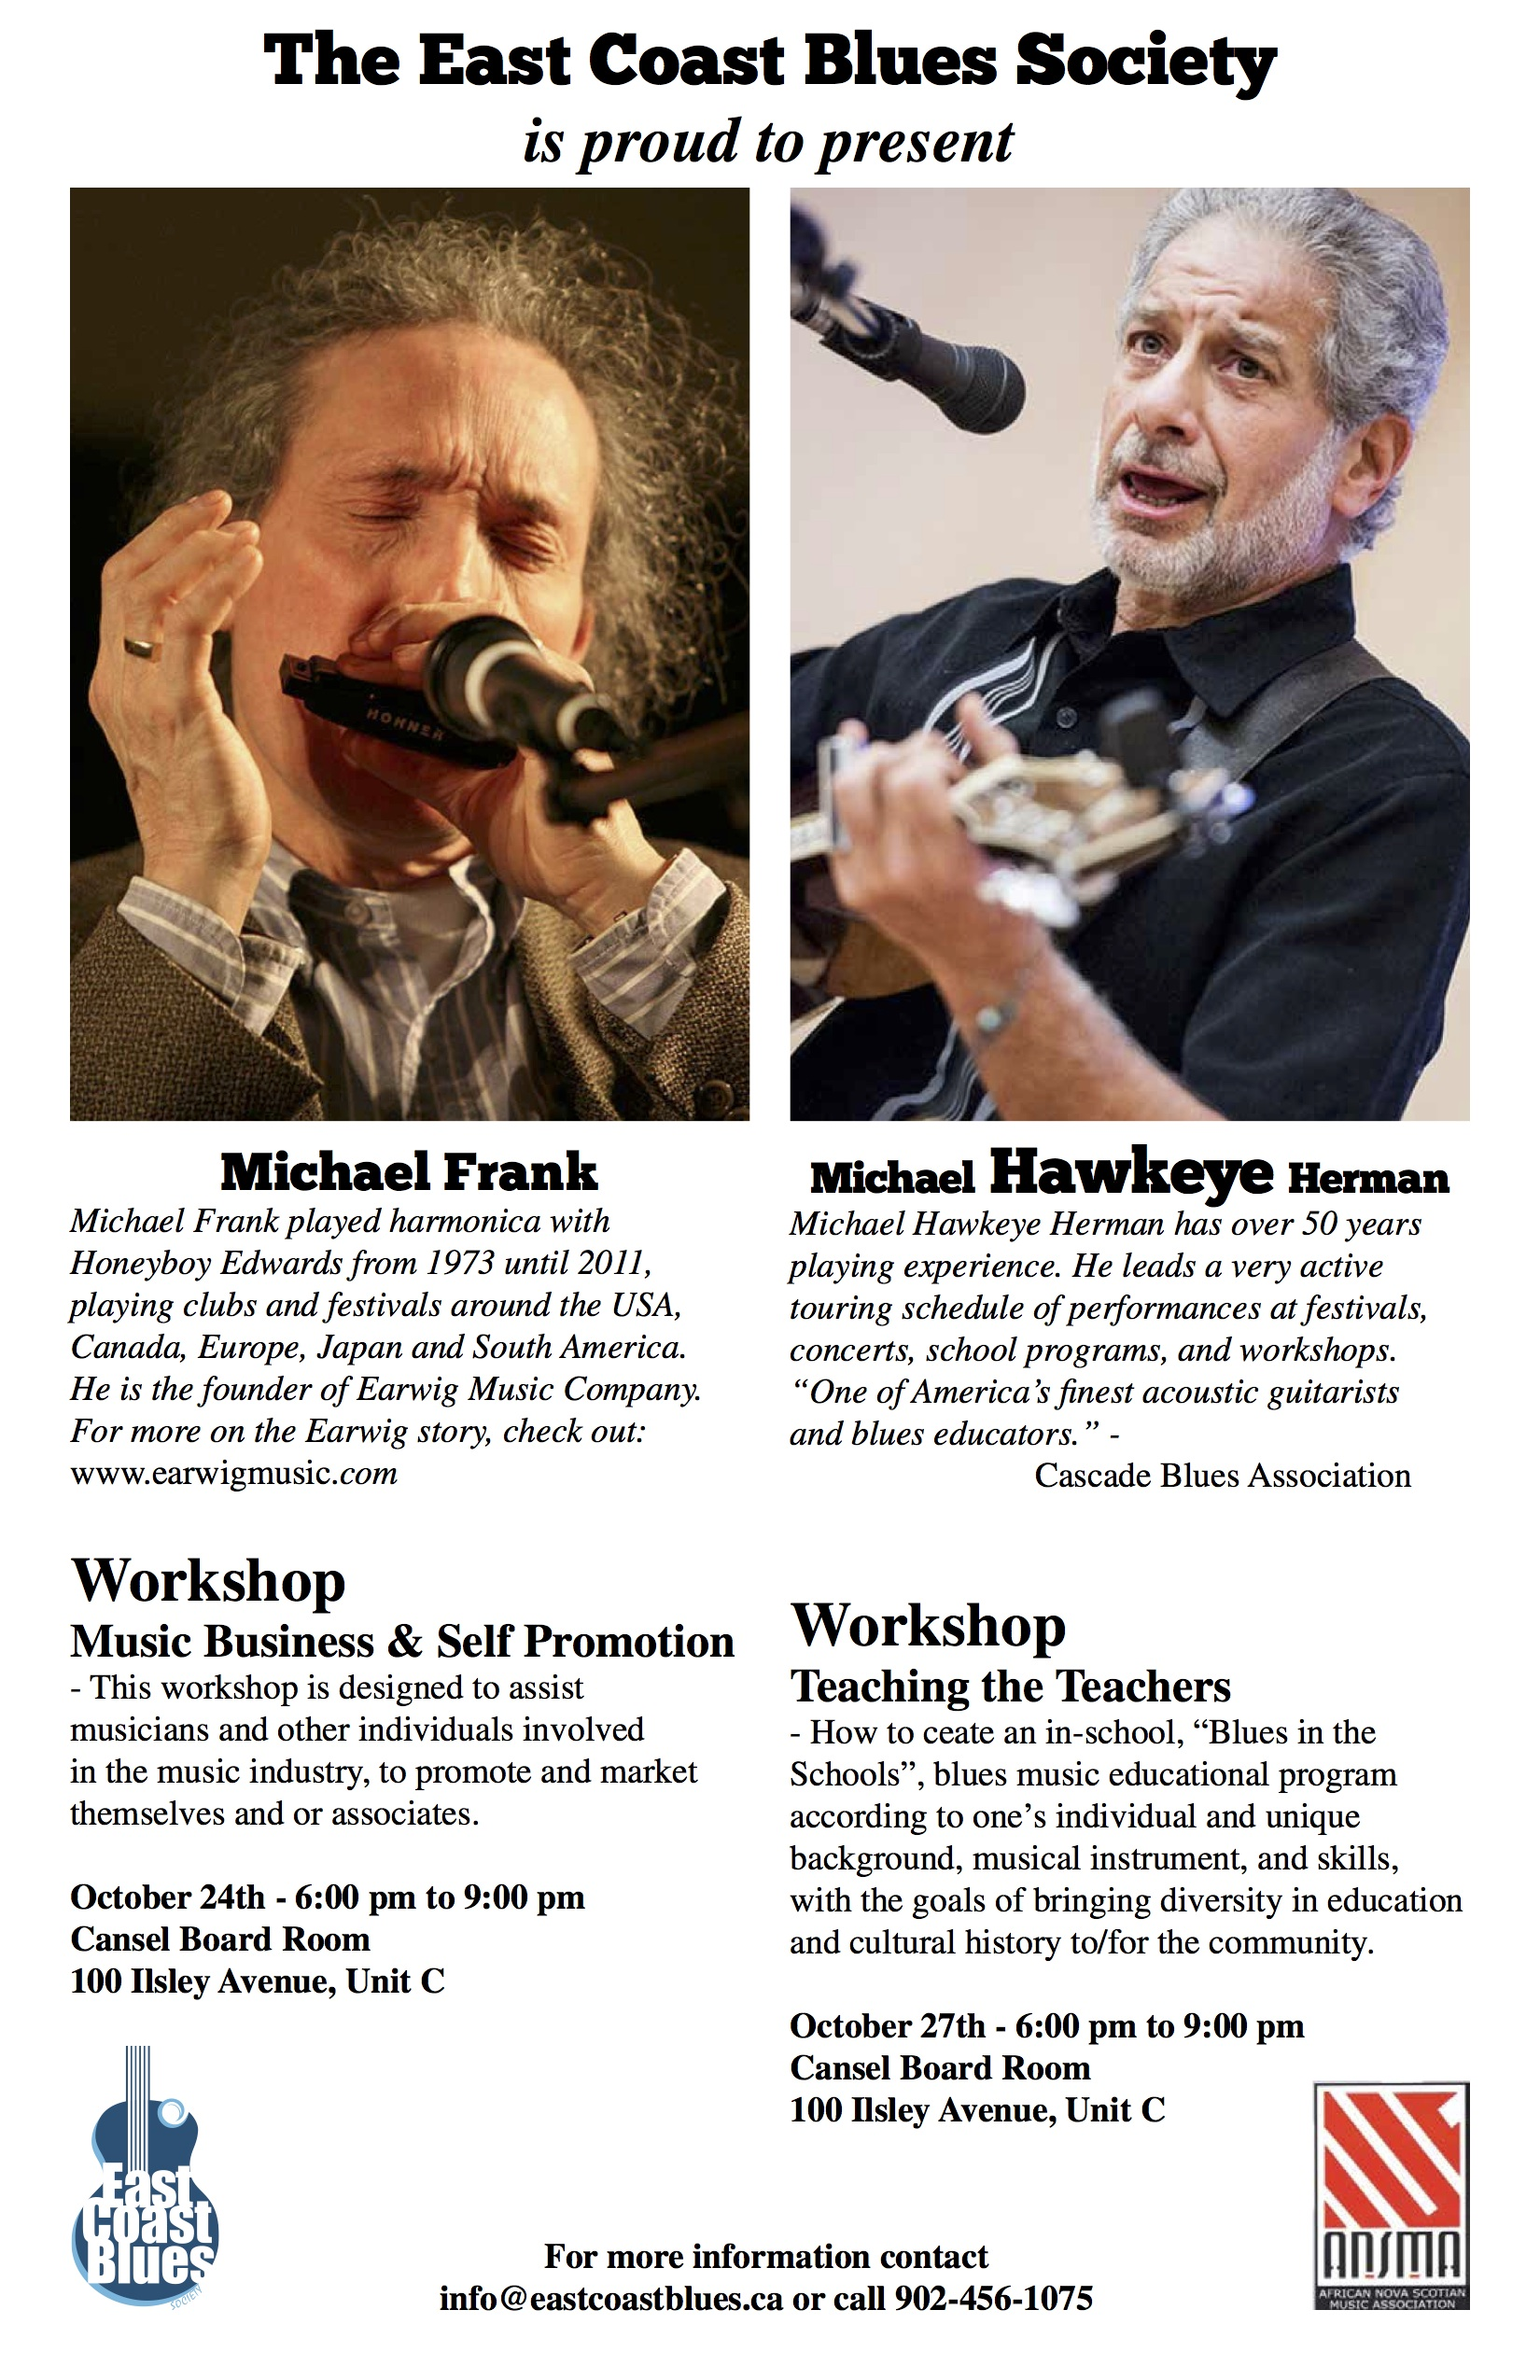 Workshops with Michael Frank and Michael Hawkeye Herman